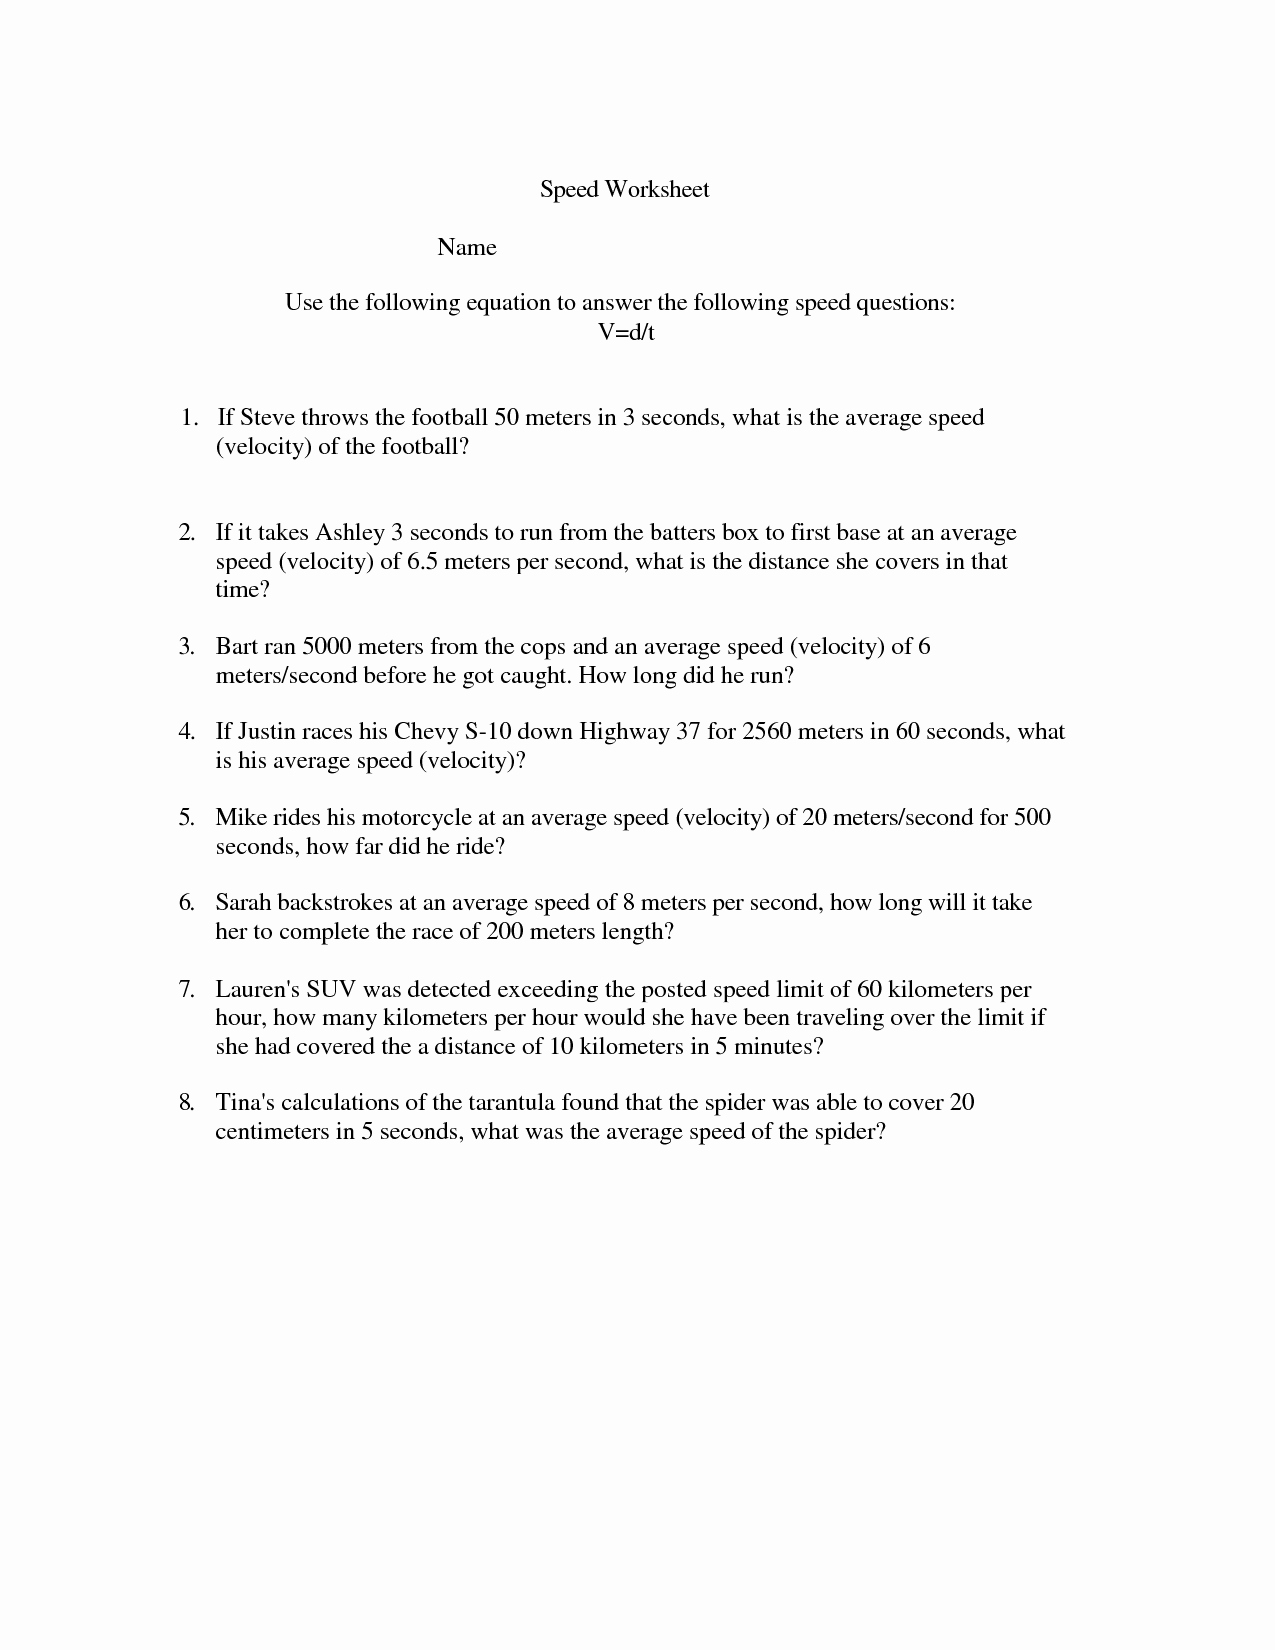 Speed Practice Problems Worksheet New Calculating Speed Problems Worksheet